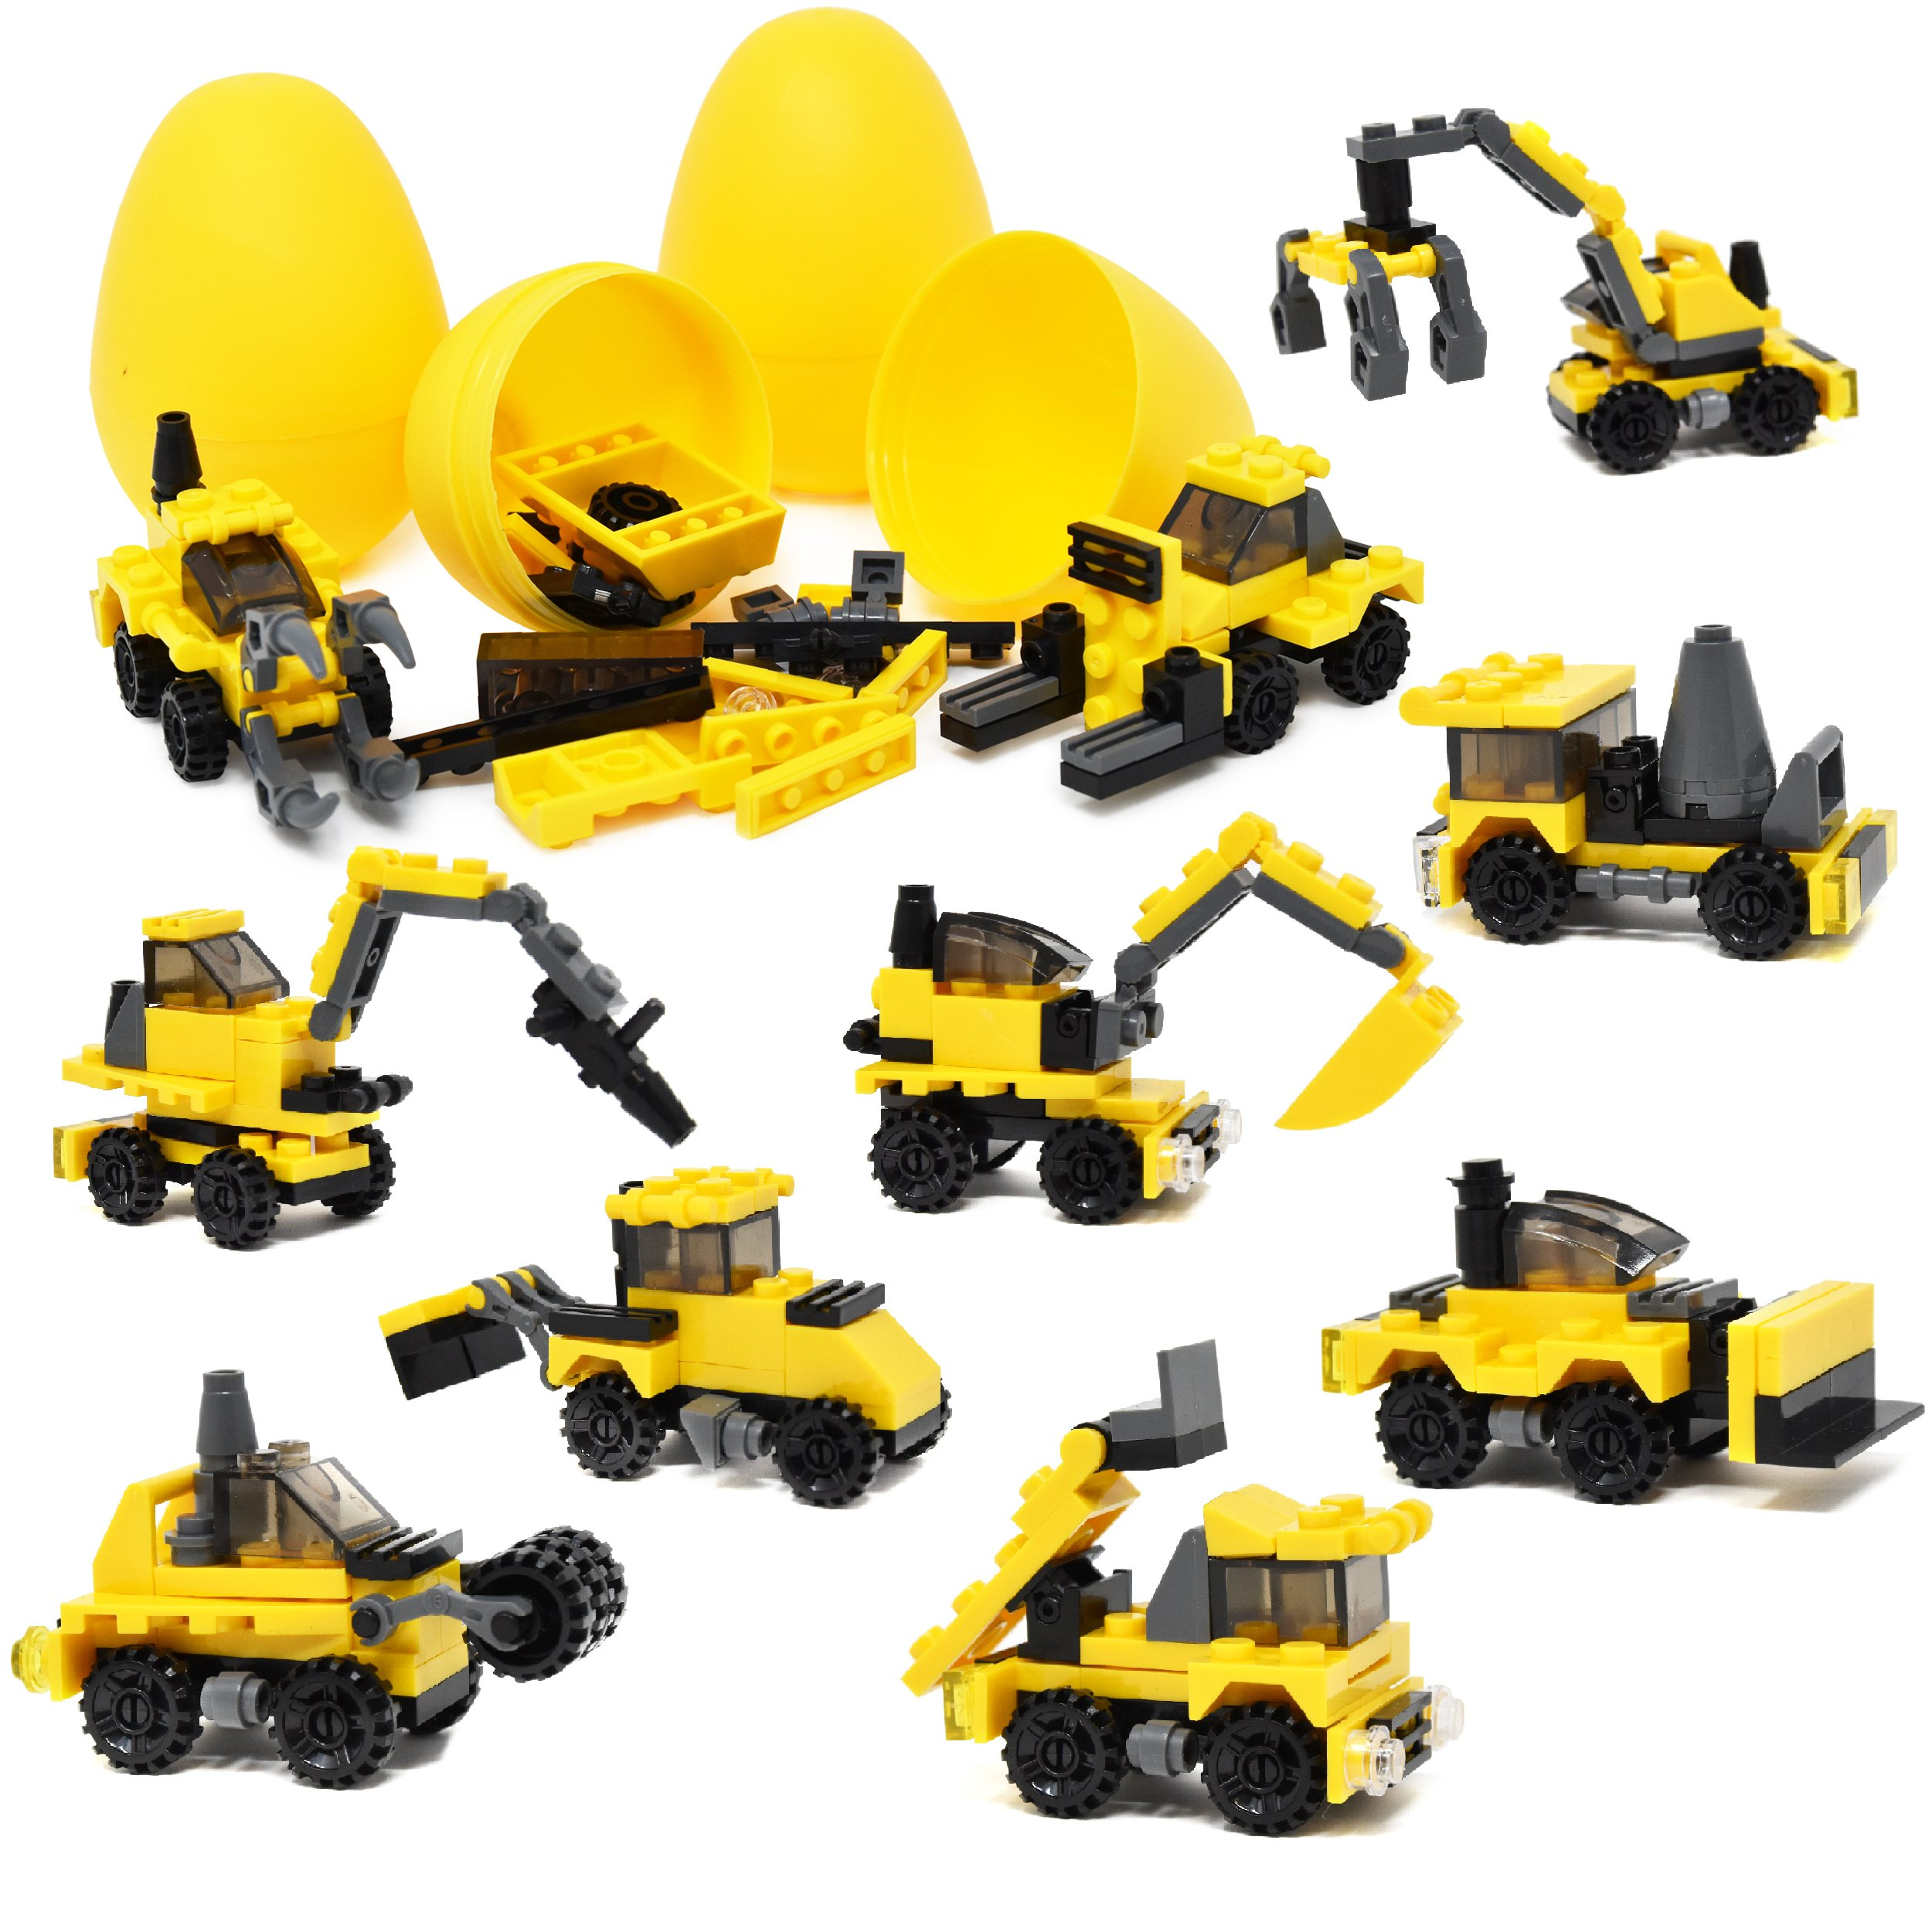 Gift Boutique 12 Filled Easter Eggs with Surprise Building Block Toys Inside Prefilled Egg for Kids to Build Different Kinds of Construction Vehicles Plastic 3'' Easter Basket Stuffers